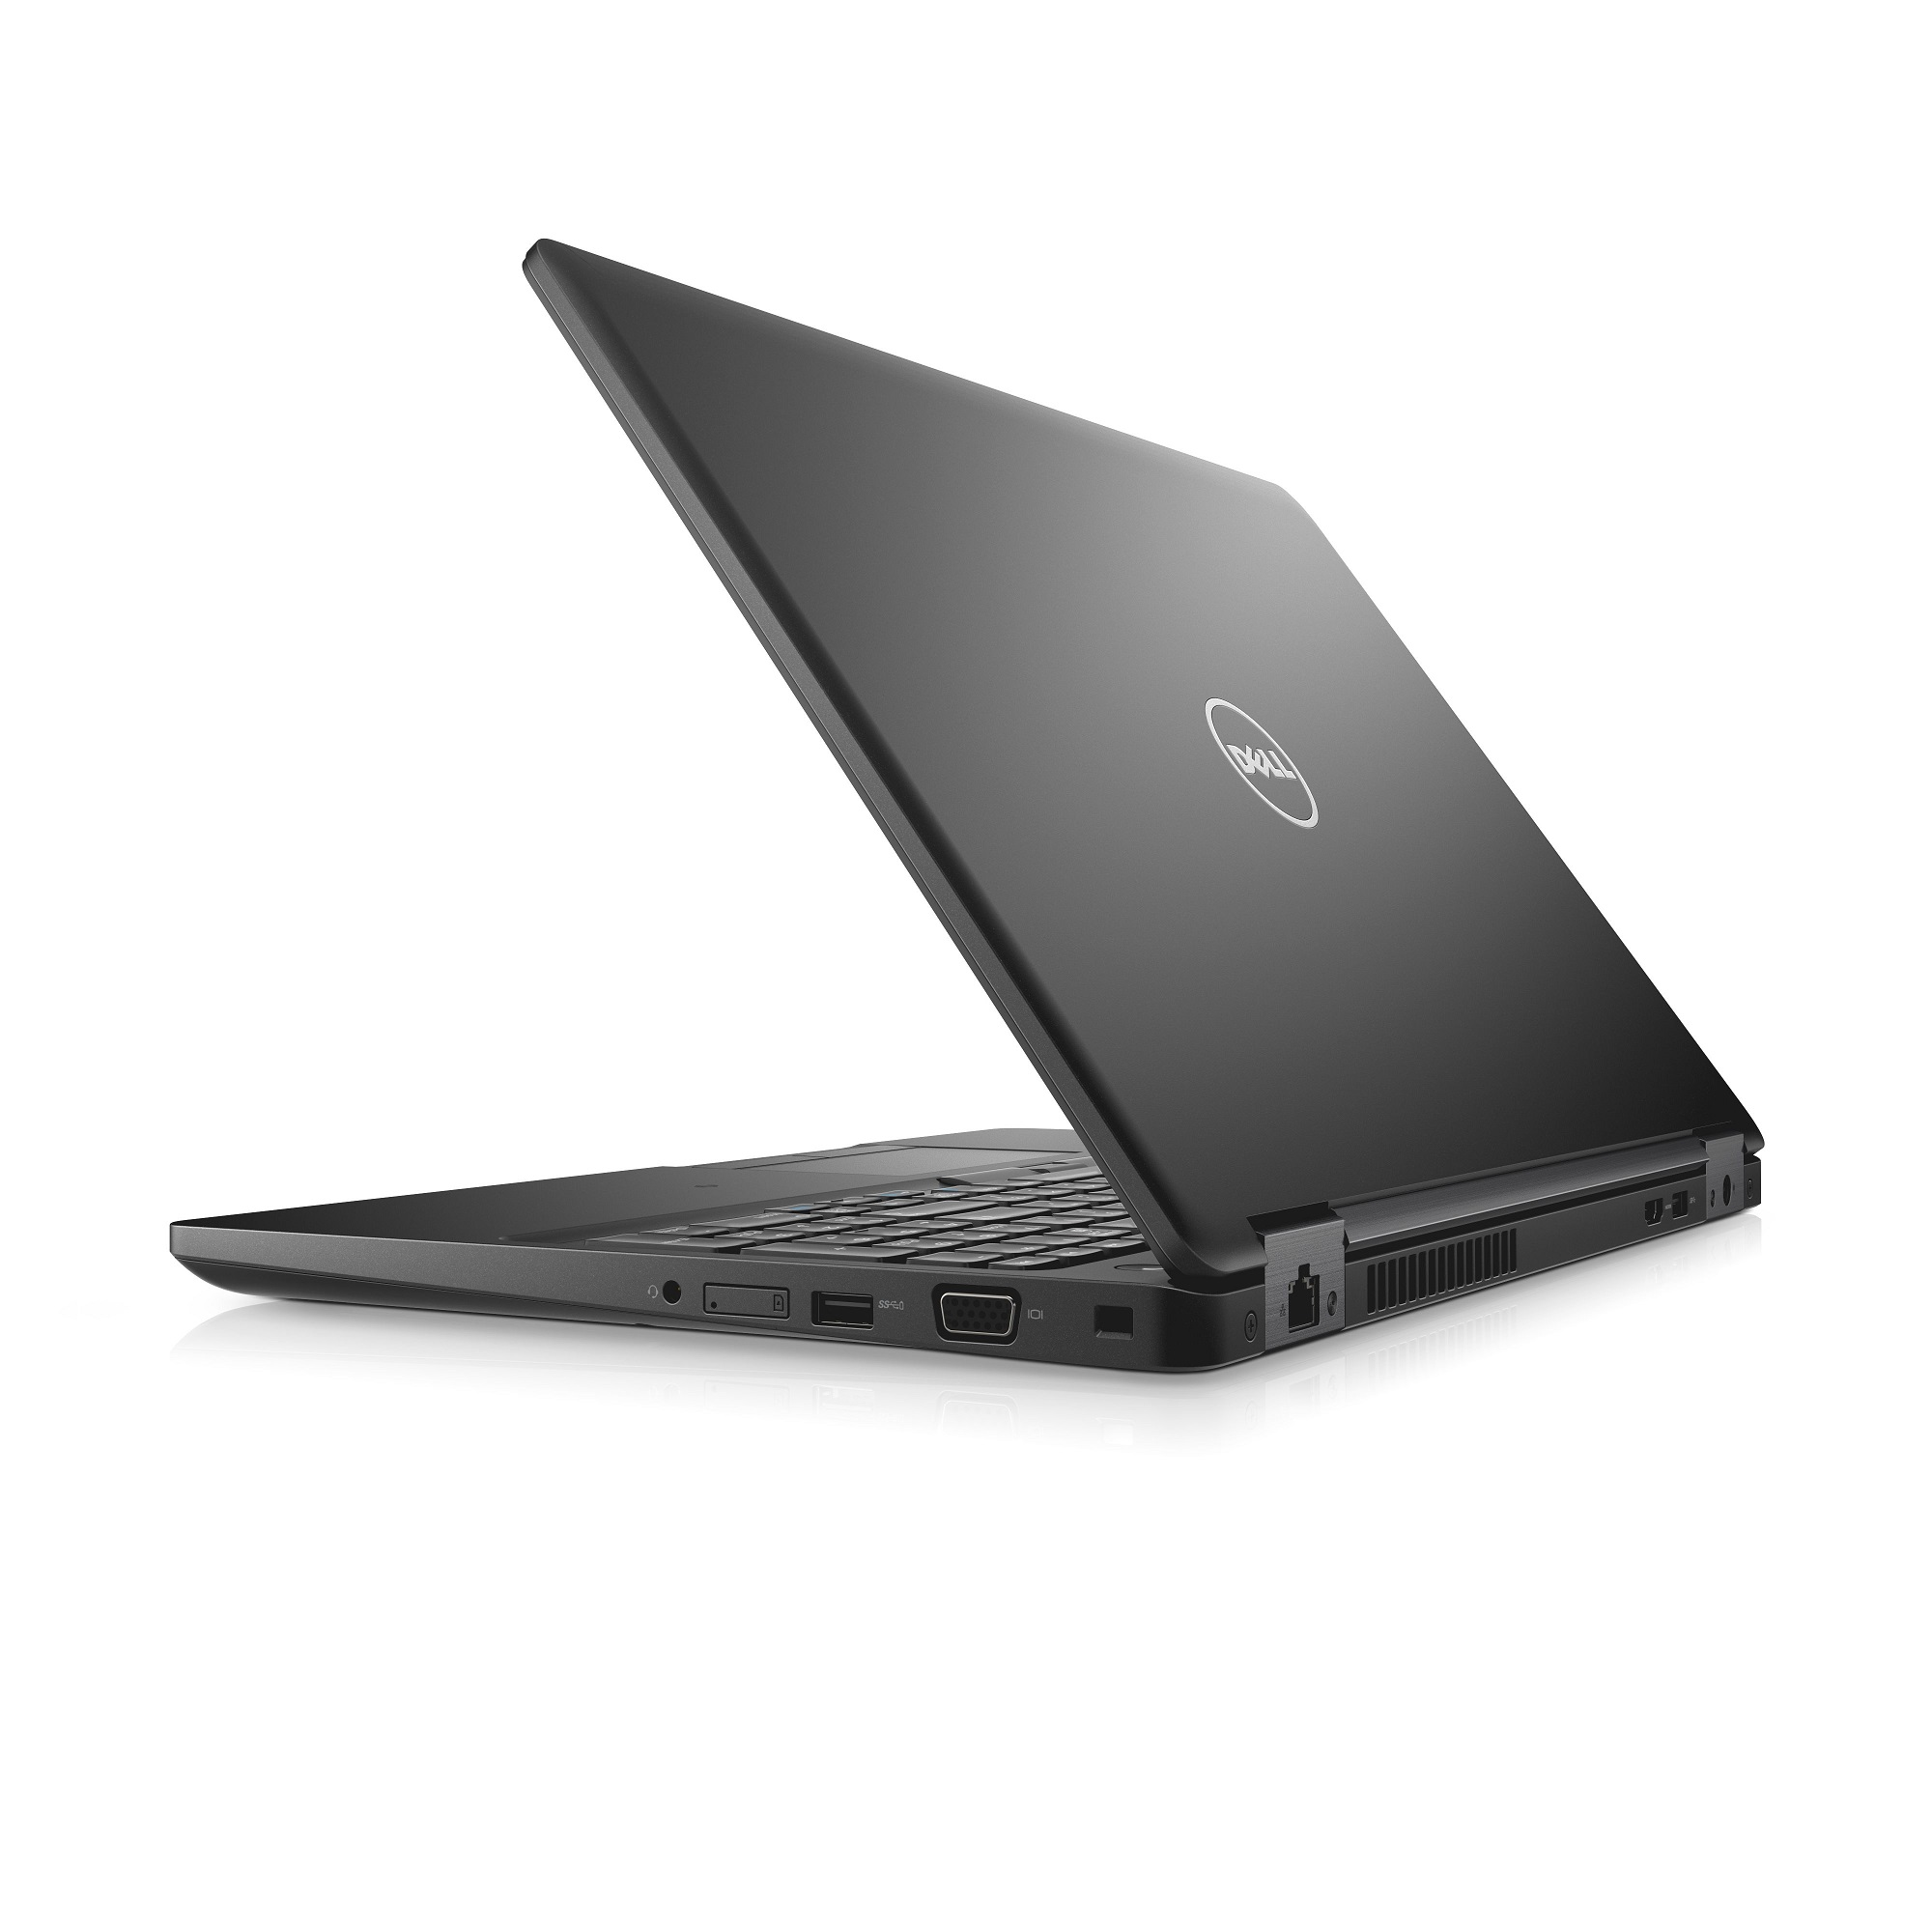 "DELL Latitude 5580 i5-7300U 15.6"" FHD 8GB 256GB SSD Intel HD 620 FPR/SC Cam & Mic/WL+BT/Backlit Kb/4 Cel"